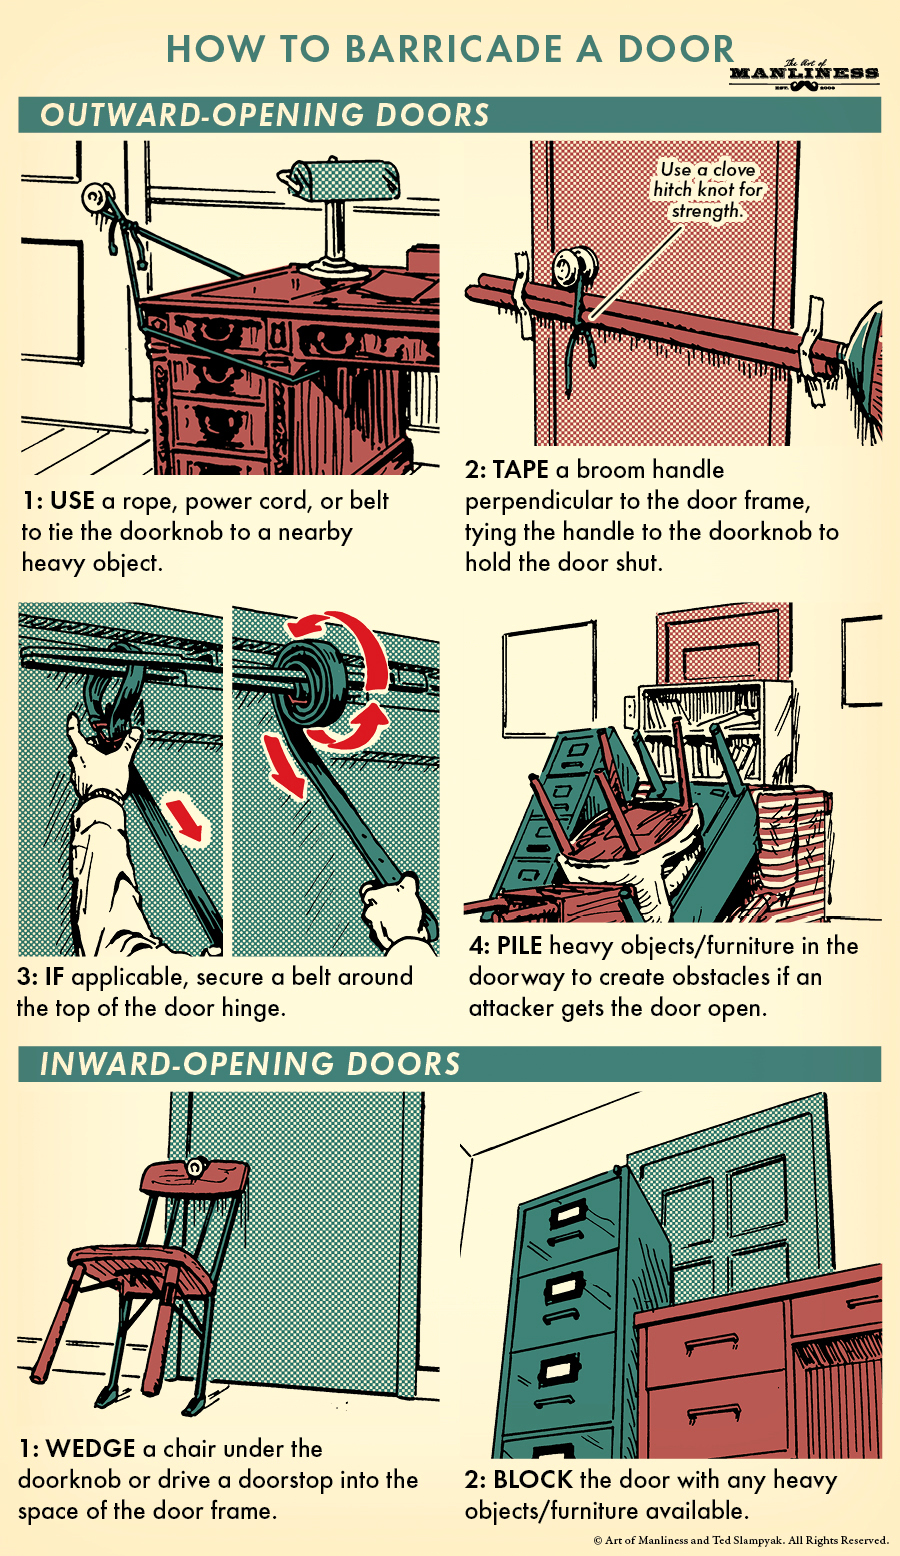 How to Barricade a Door | The Art of Manliness